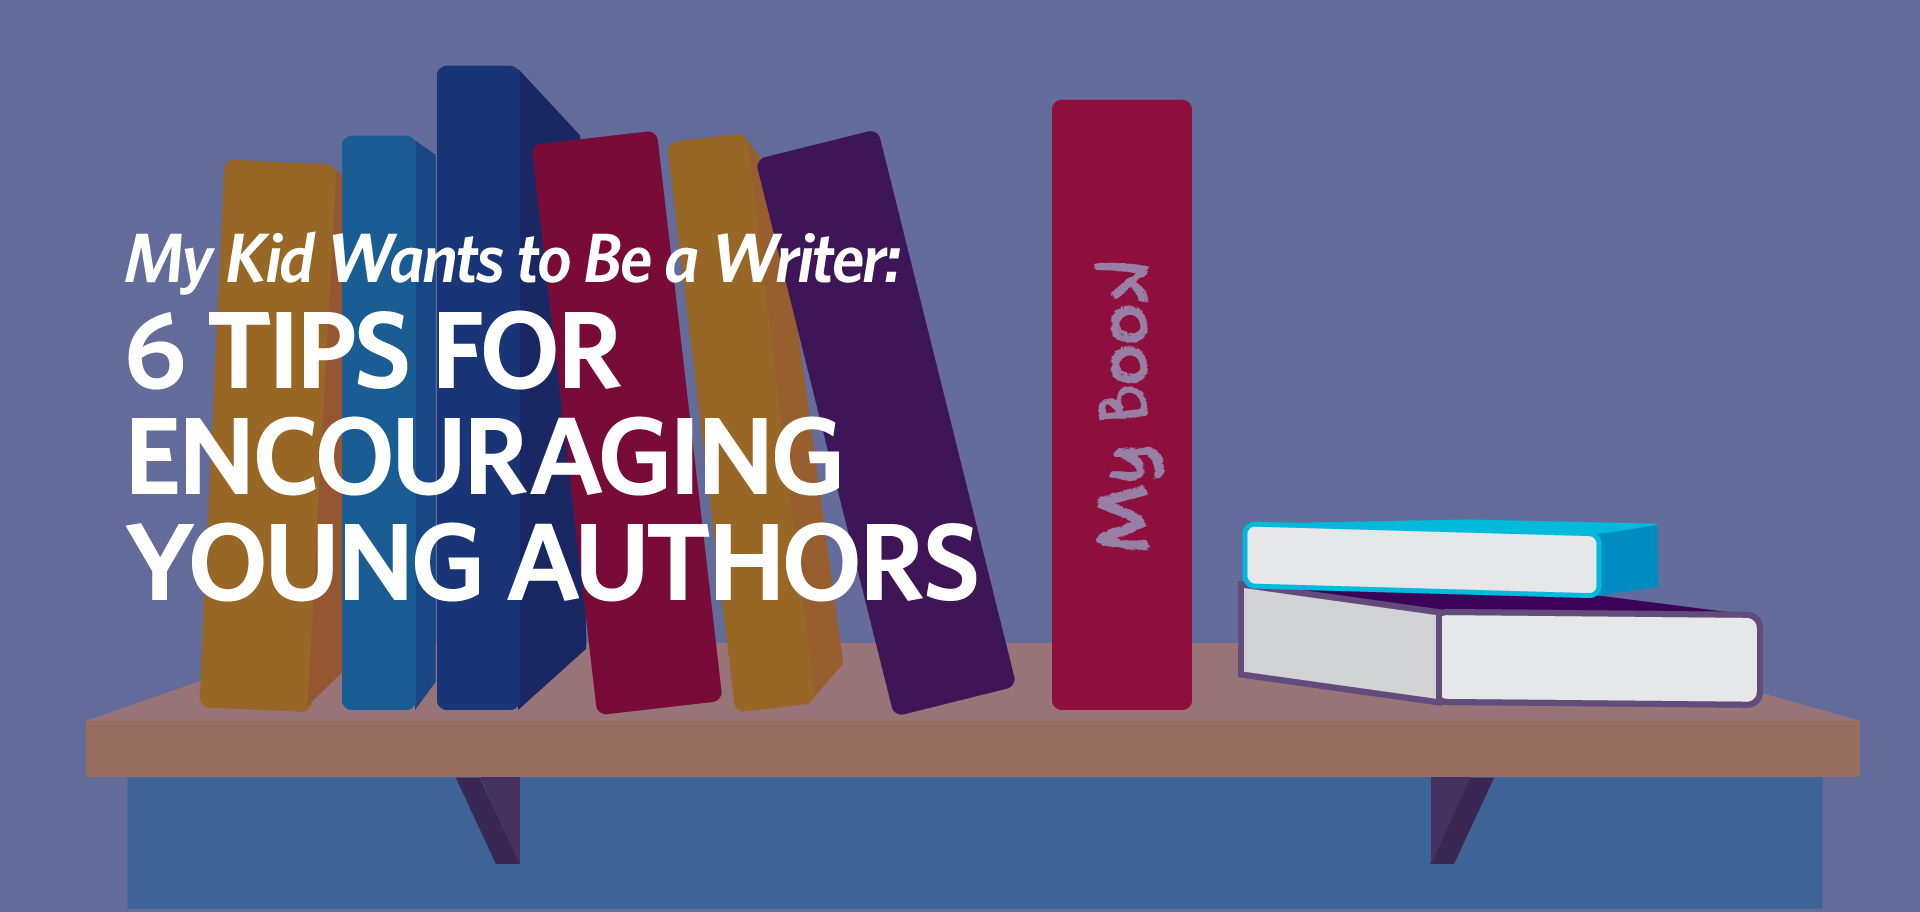 Kettle Fire Creative my kid wants to be a writer young author kid wants to be a writer My Kid Wants to be a Writer: 6 Tips for Encouraging Young Authors kid writer 1